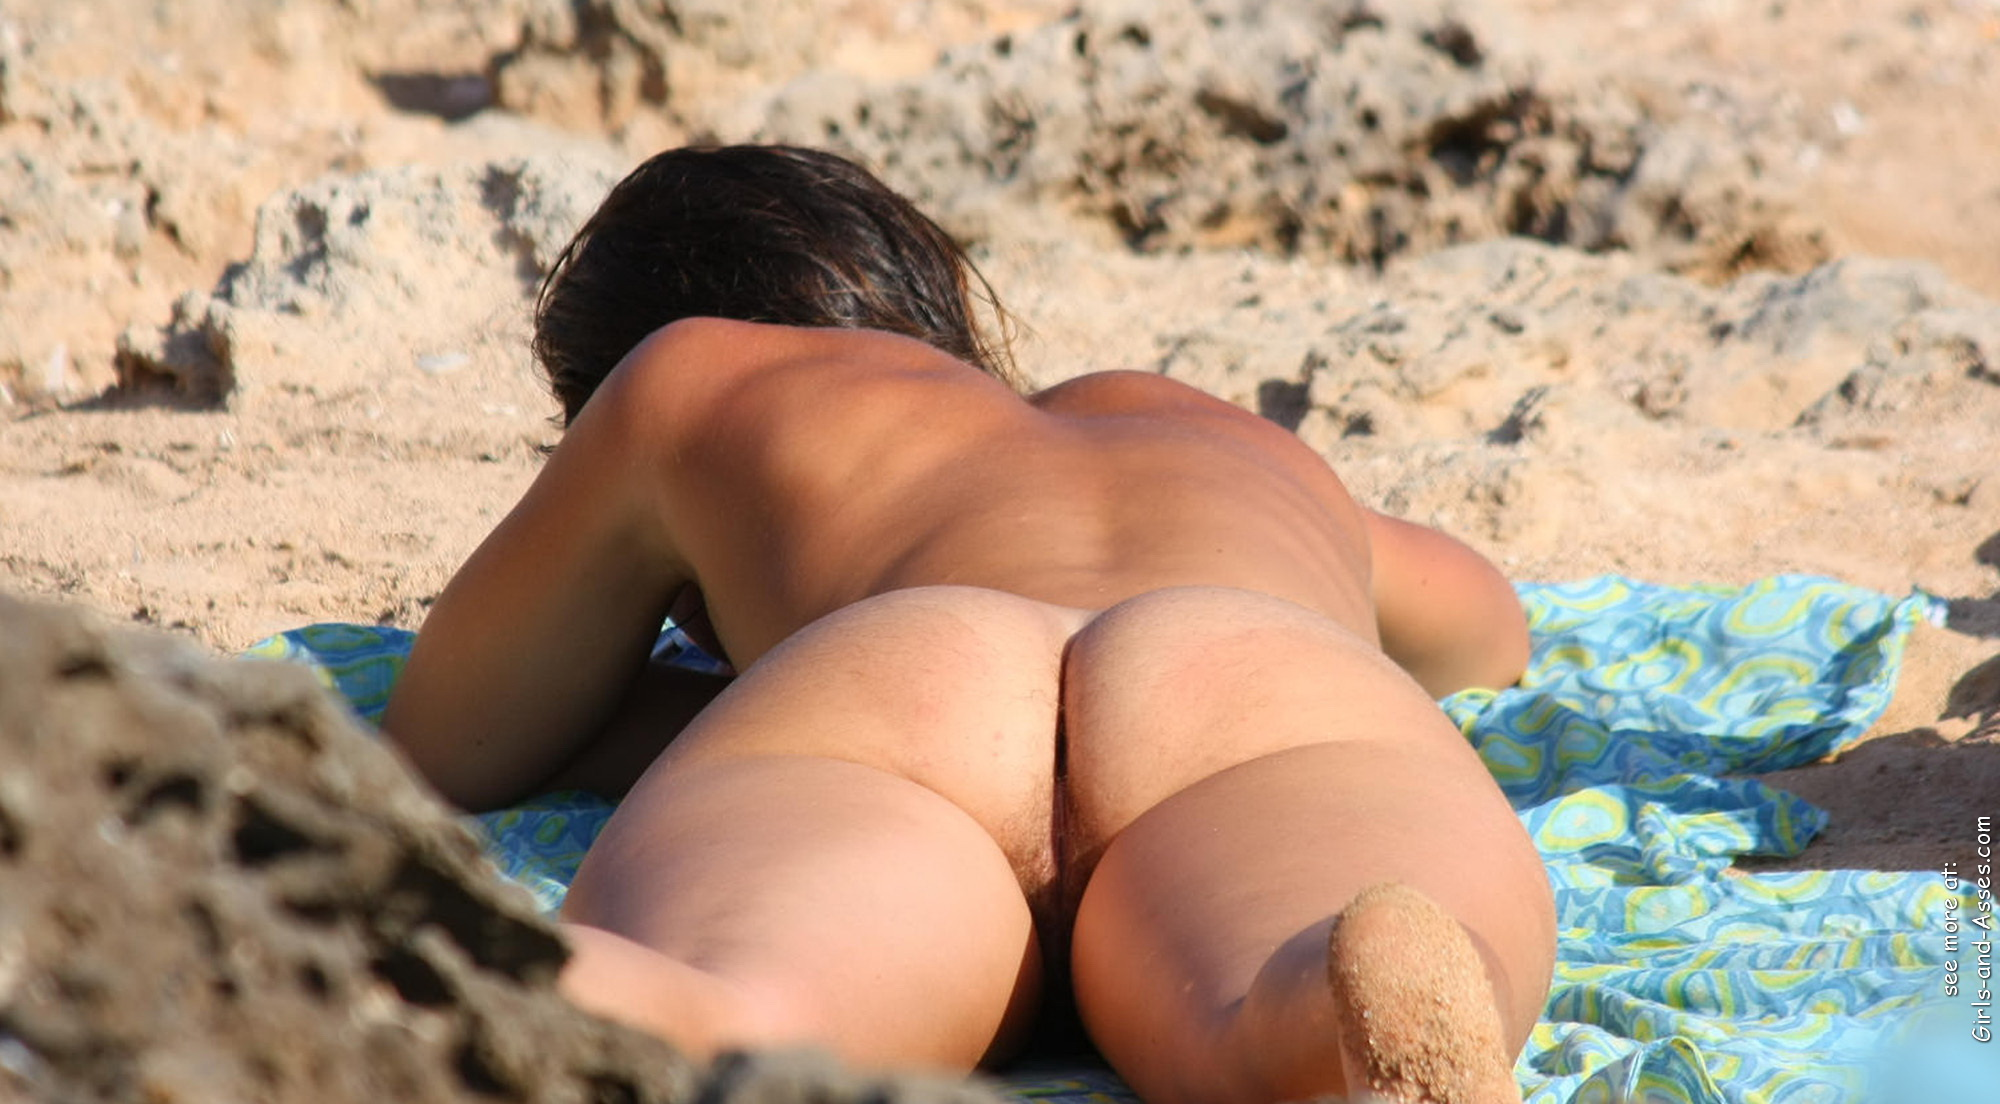 naked sunbathing tanning on the beach pic 00842